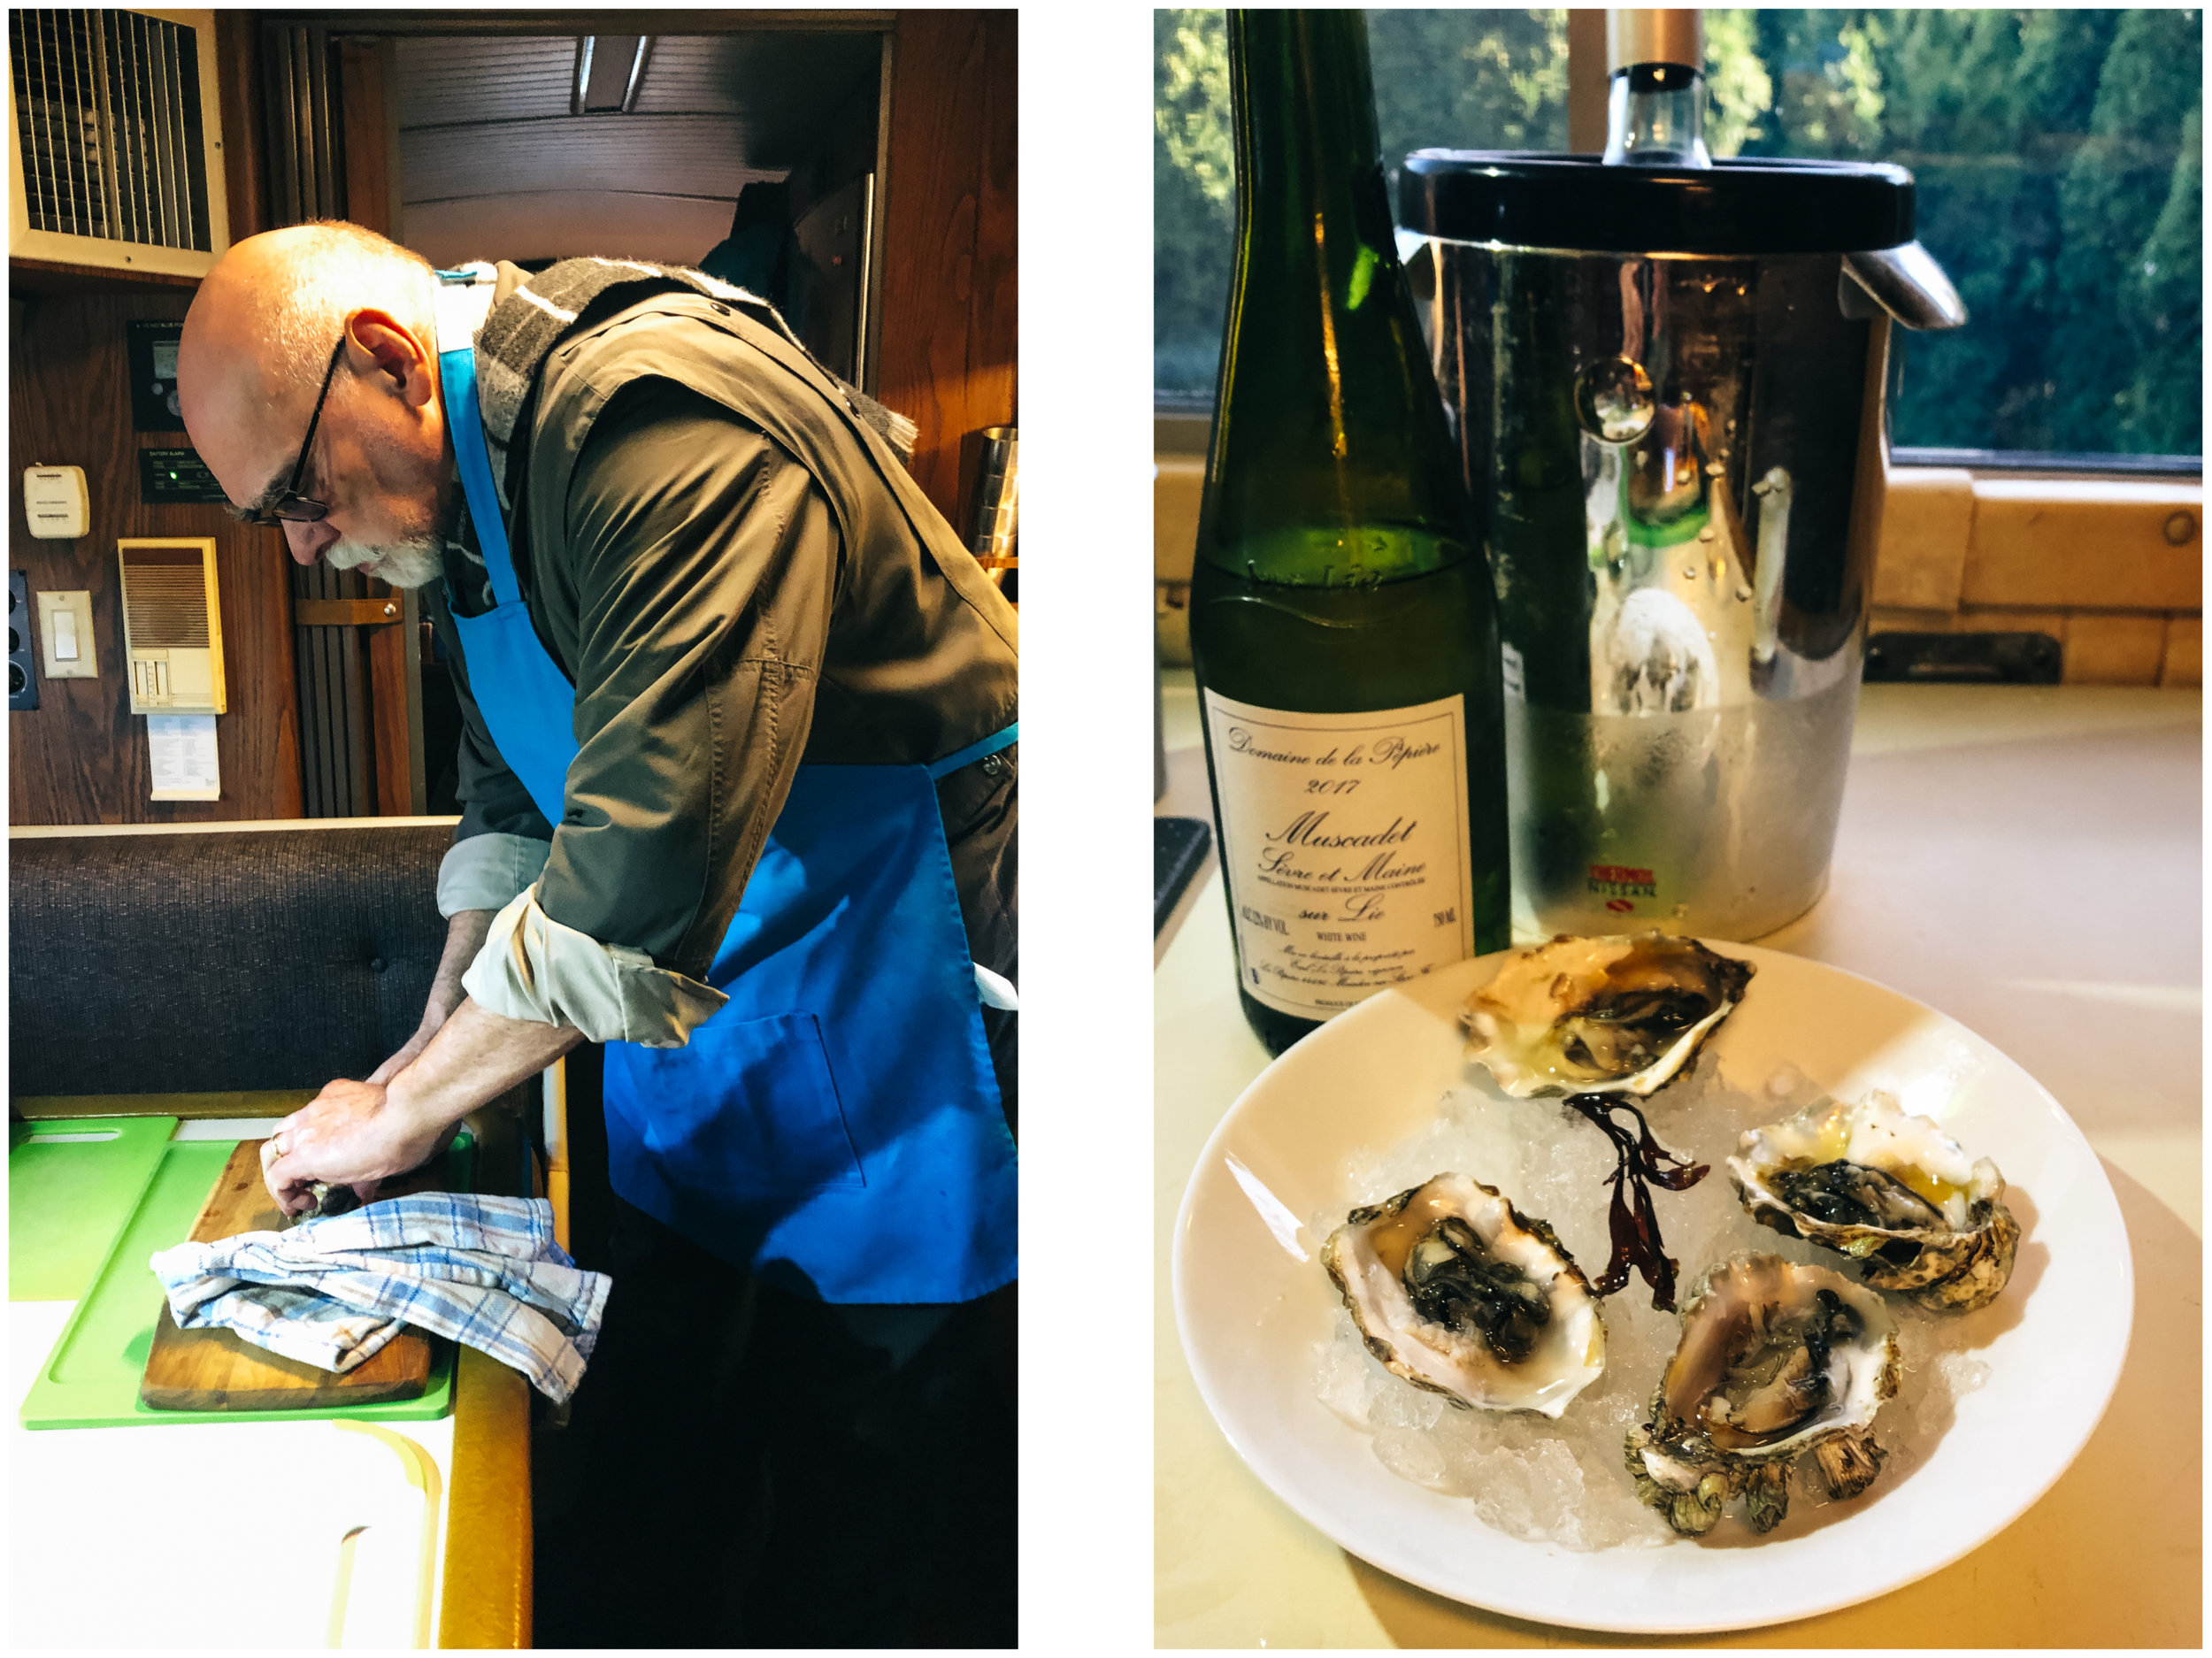 He taught me to shuck oysters.